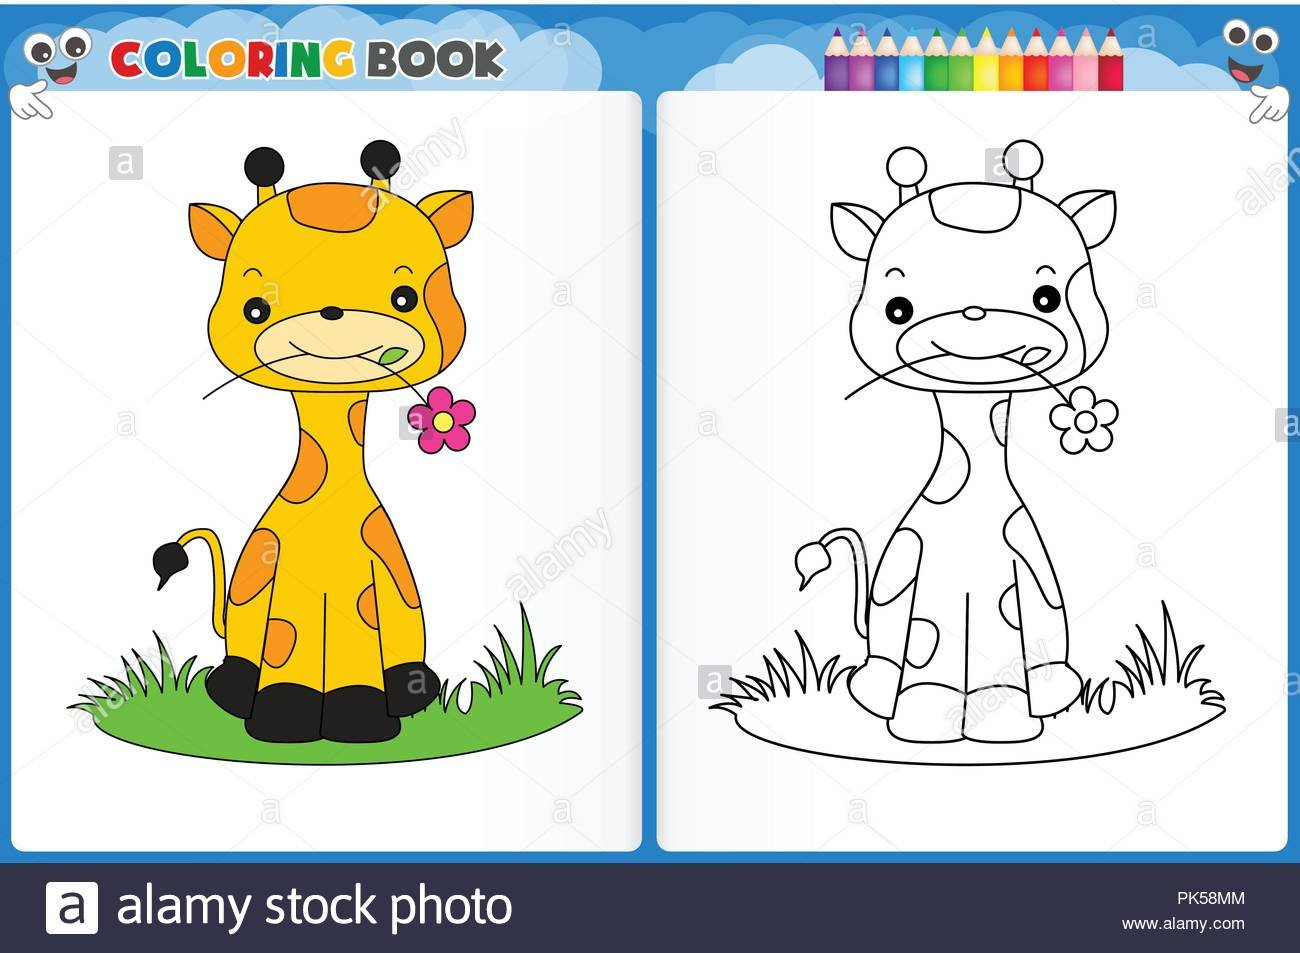 coloring page cute giraffe with colorful sample printable worksheet for preschool kindergarten kids to improve basic coloring skills PK58MM